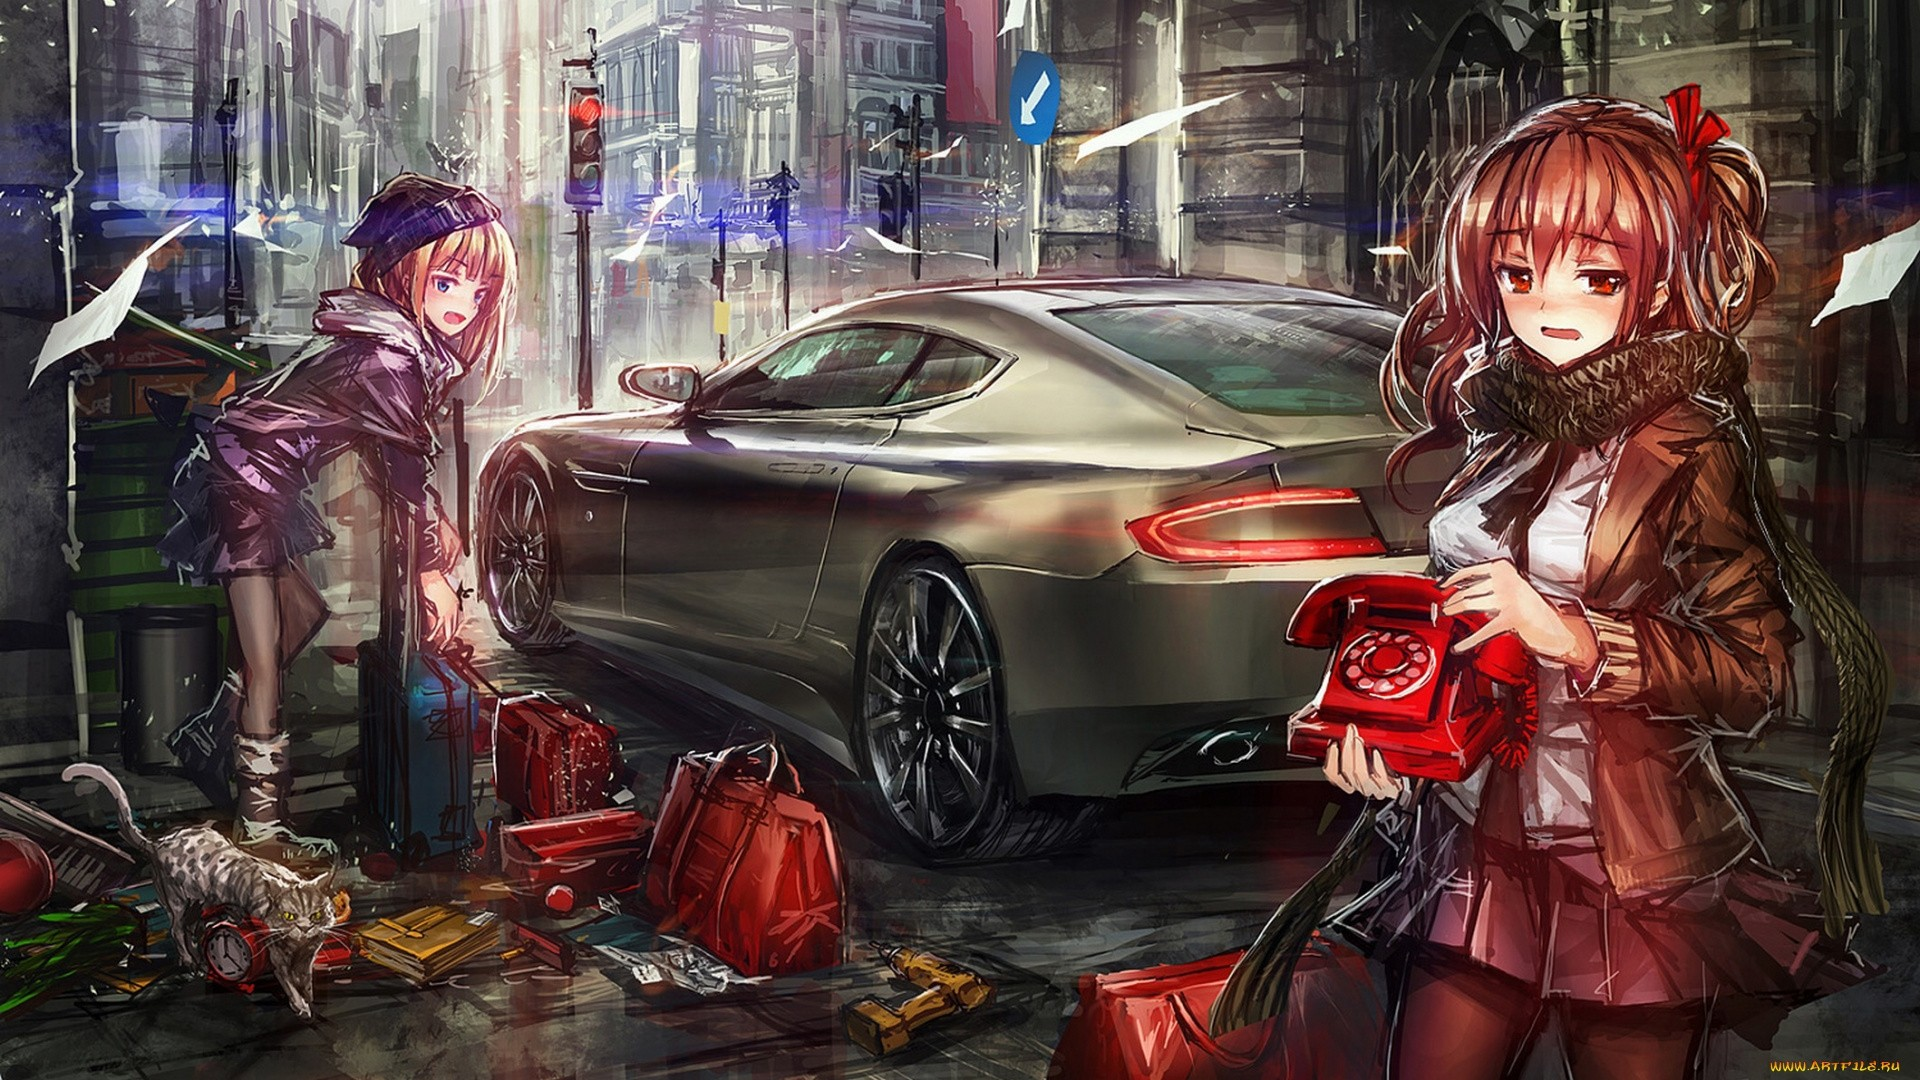 Anime Girl With Car Wallpaper 1920x1080